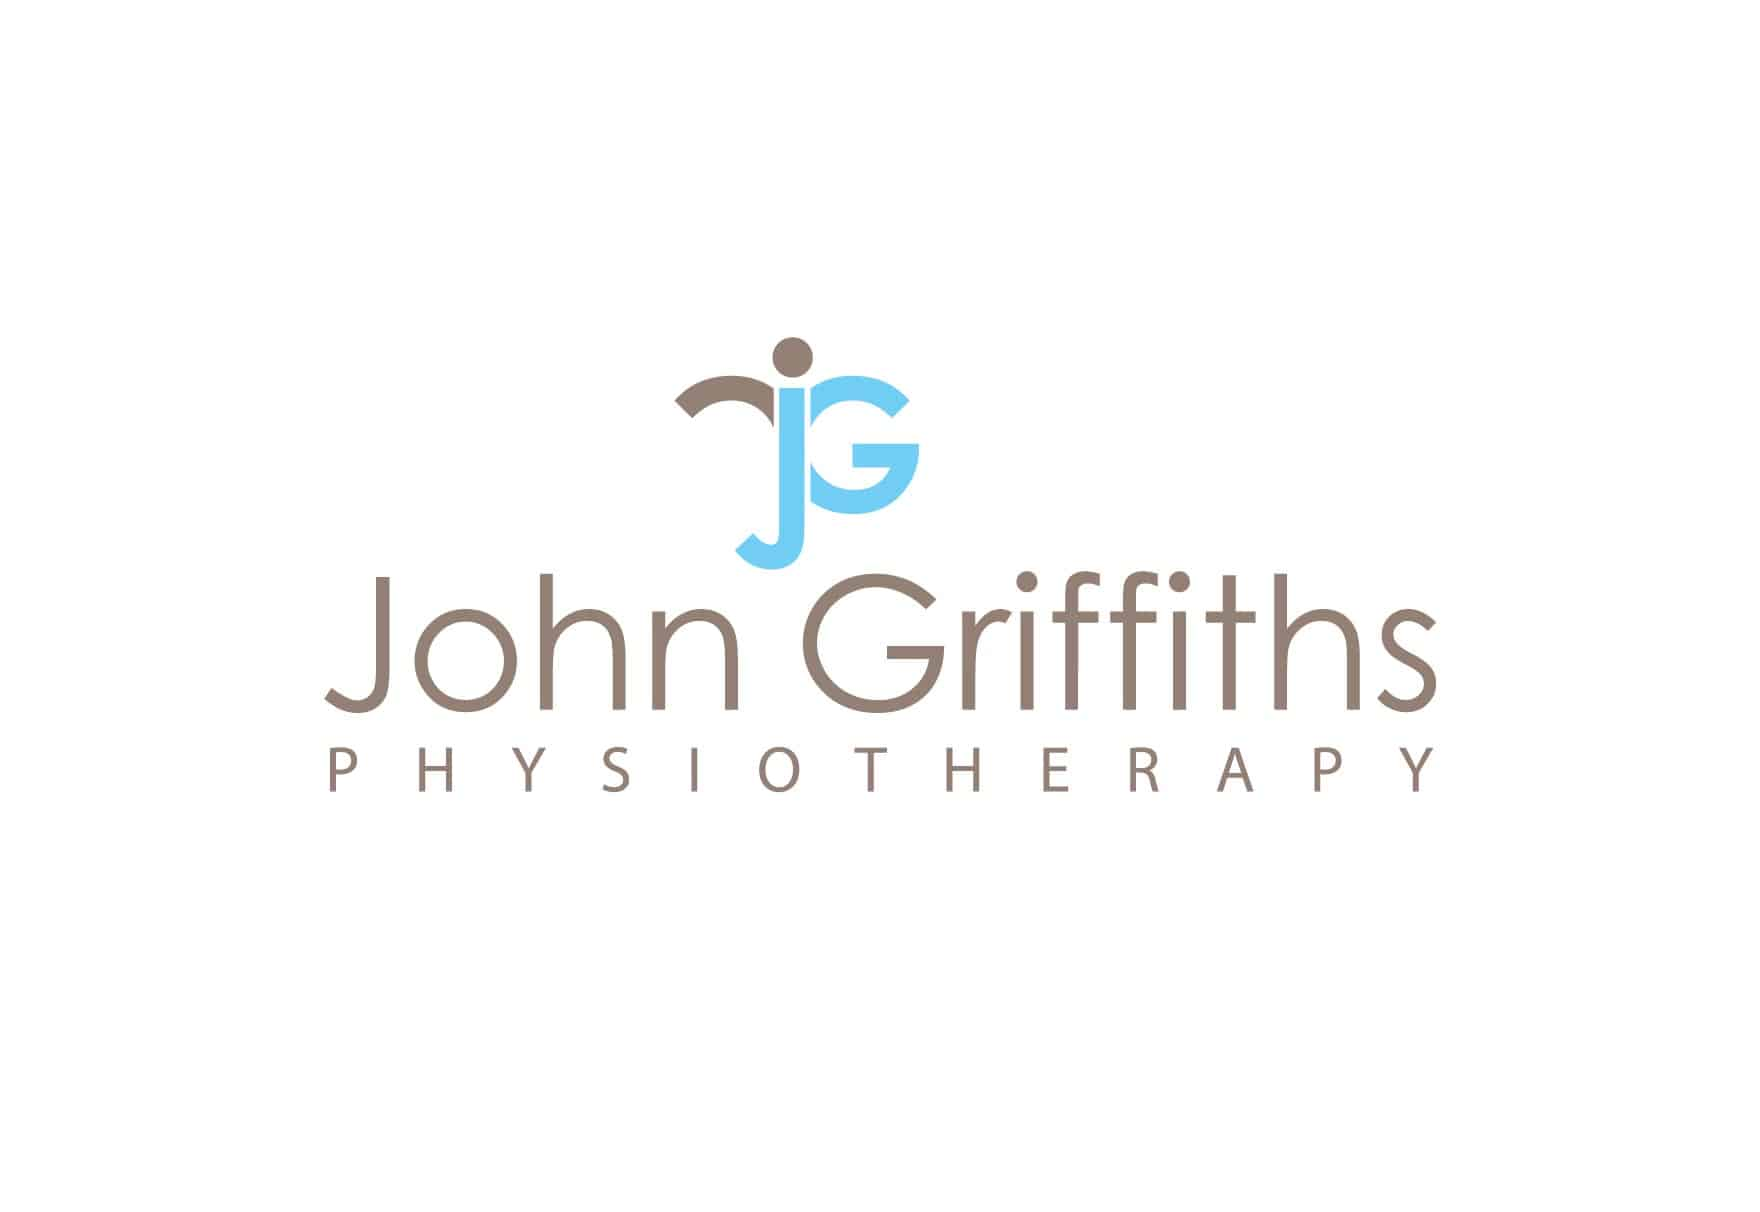 john-griffiths-physio-logo-design